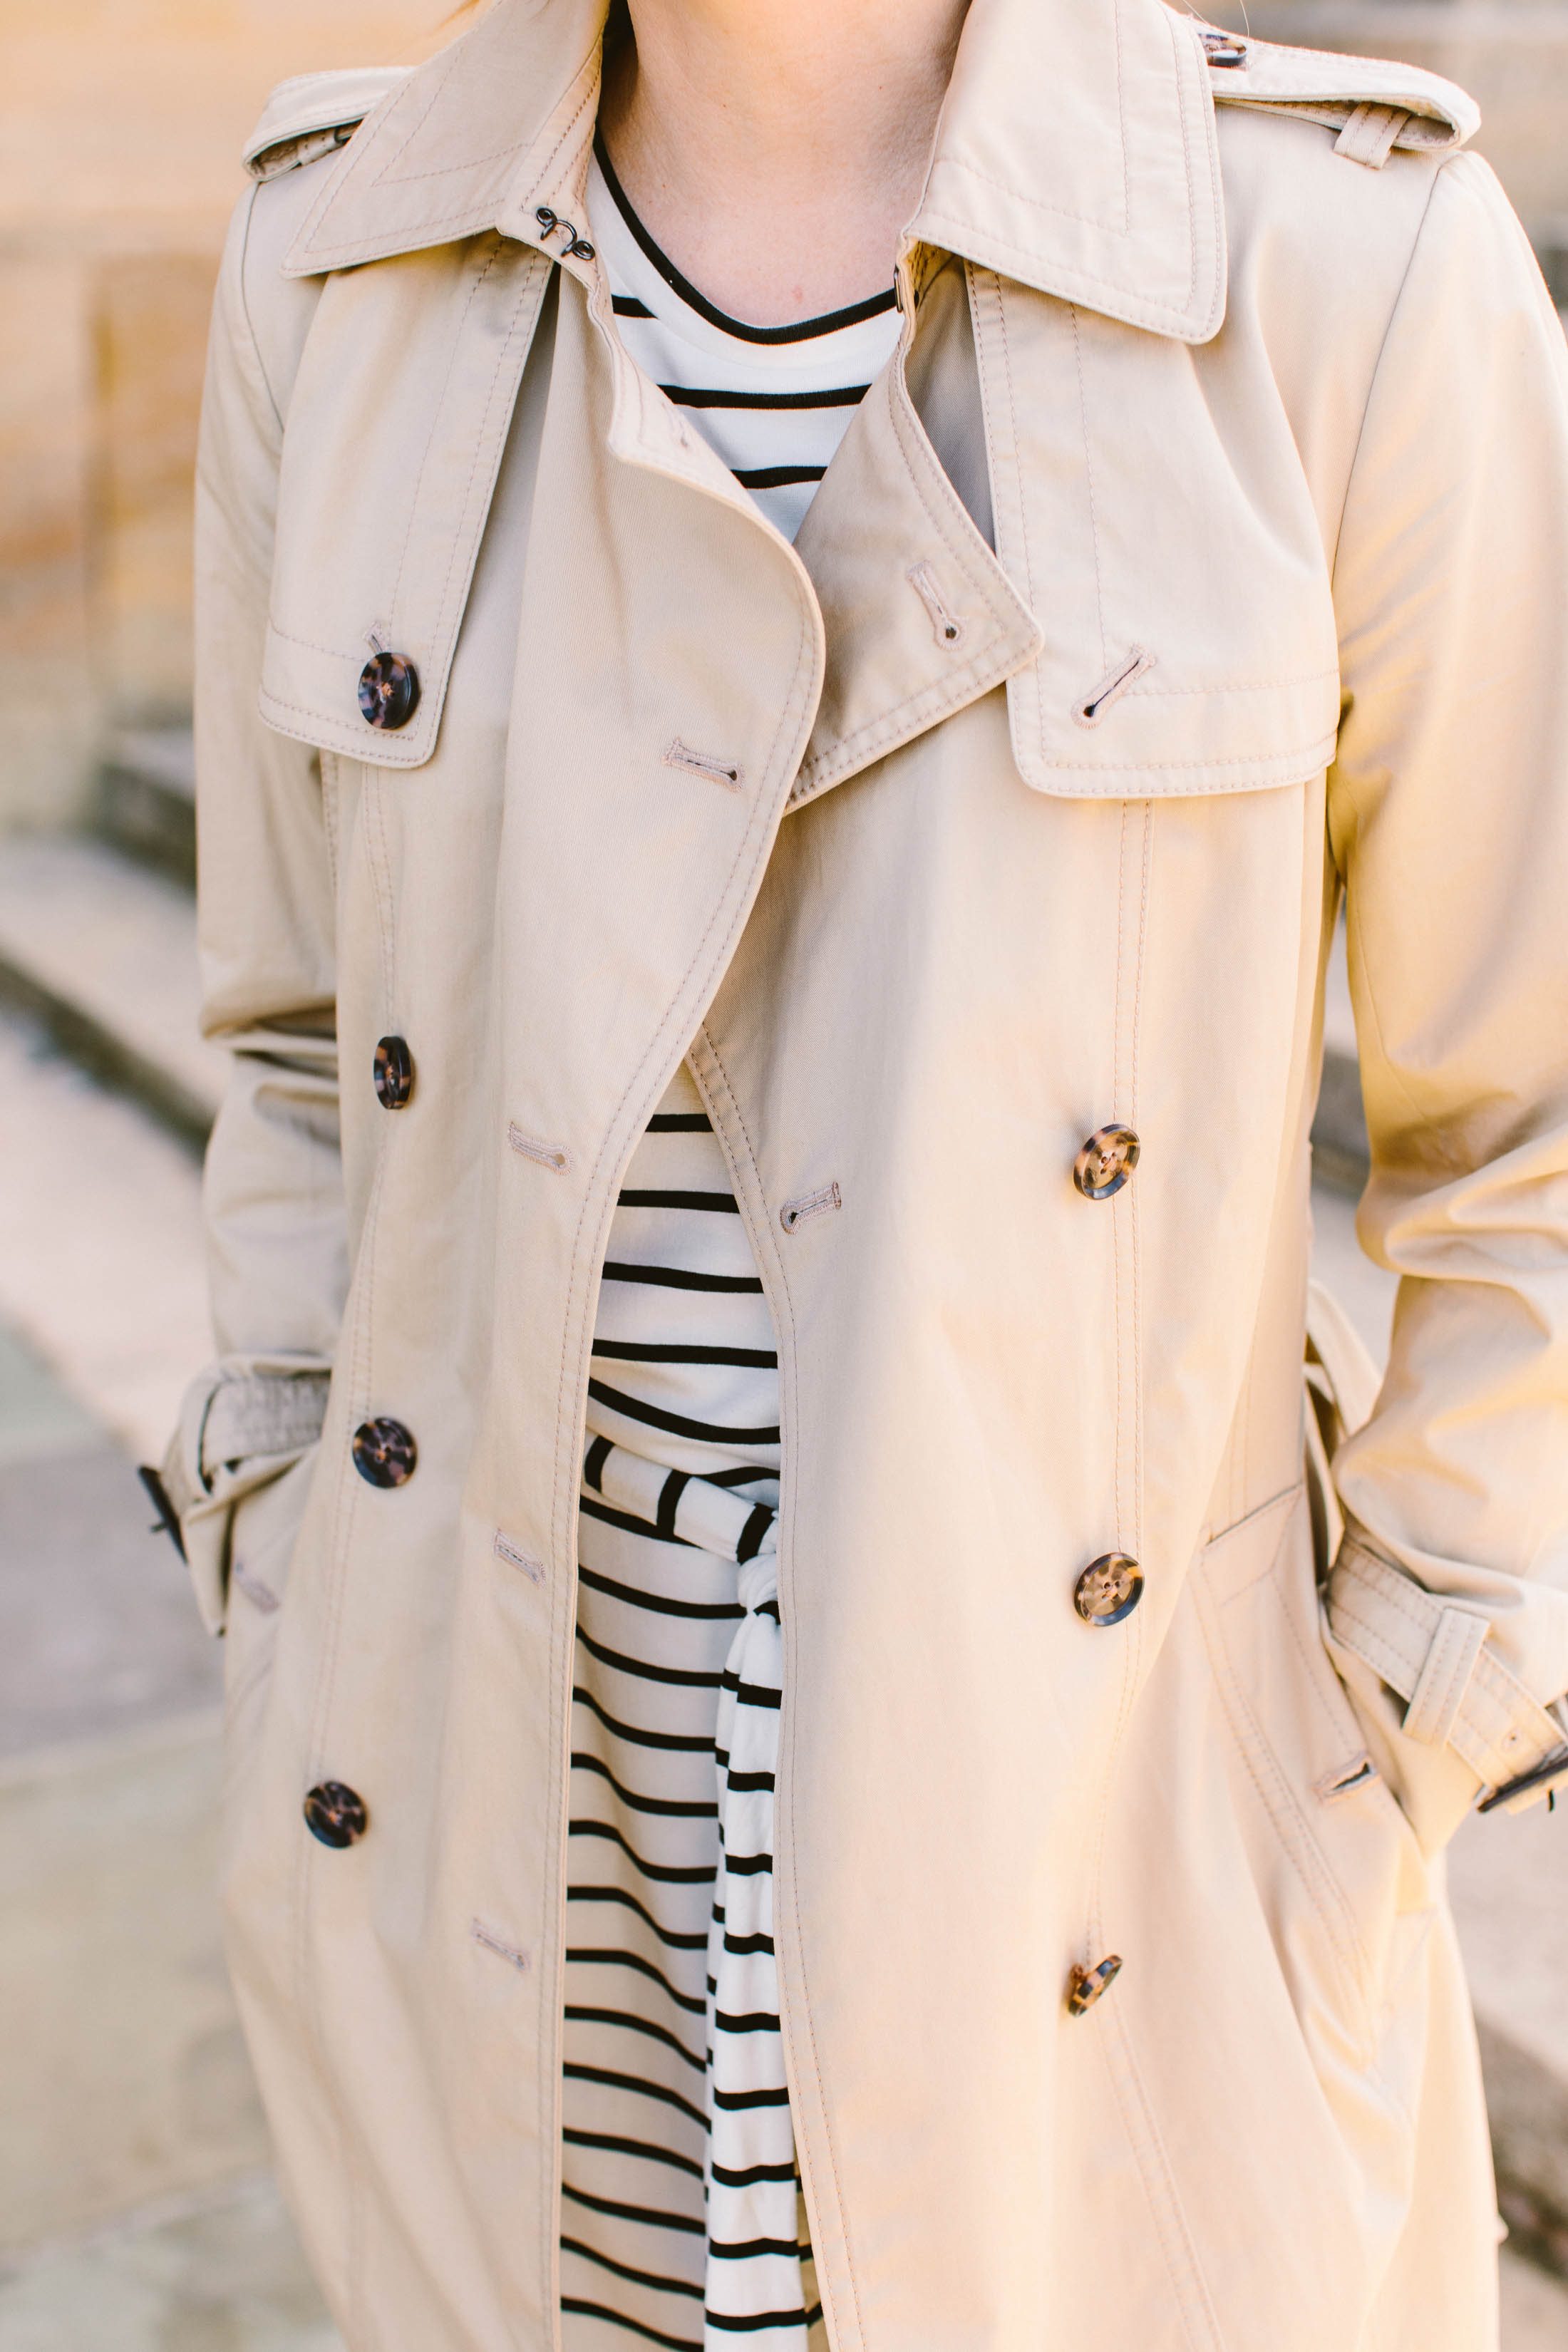 Boots & dresses season is here! We're eyeing Banana Republic for Spring dresses, & warming those up with boots, jackets & trench coats — 2 looks right here.